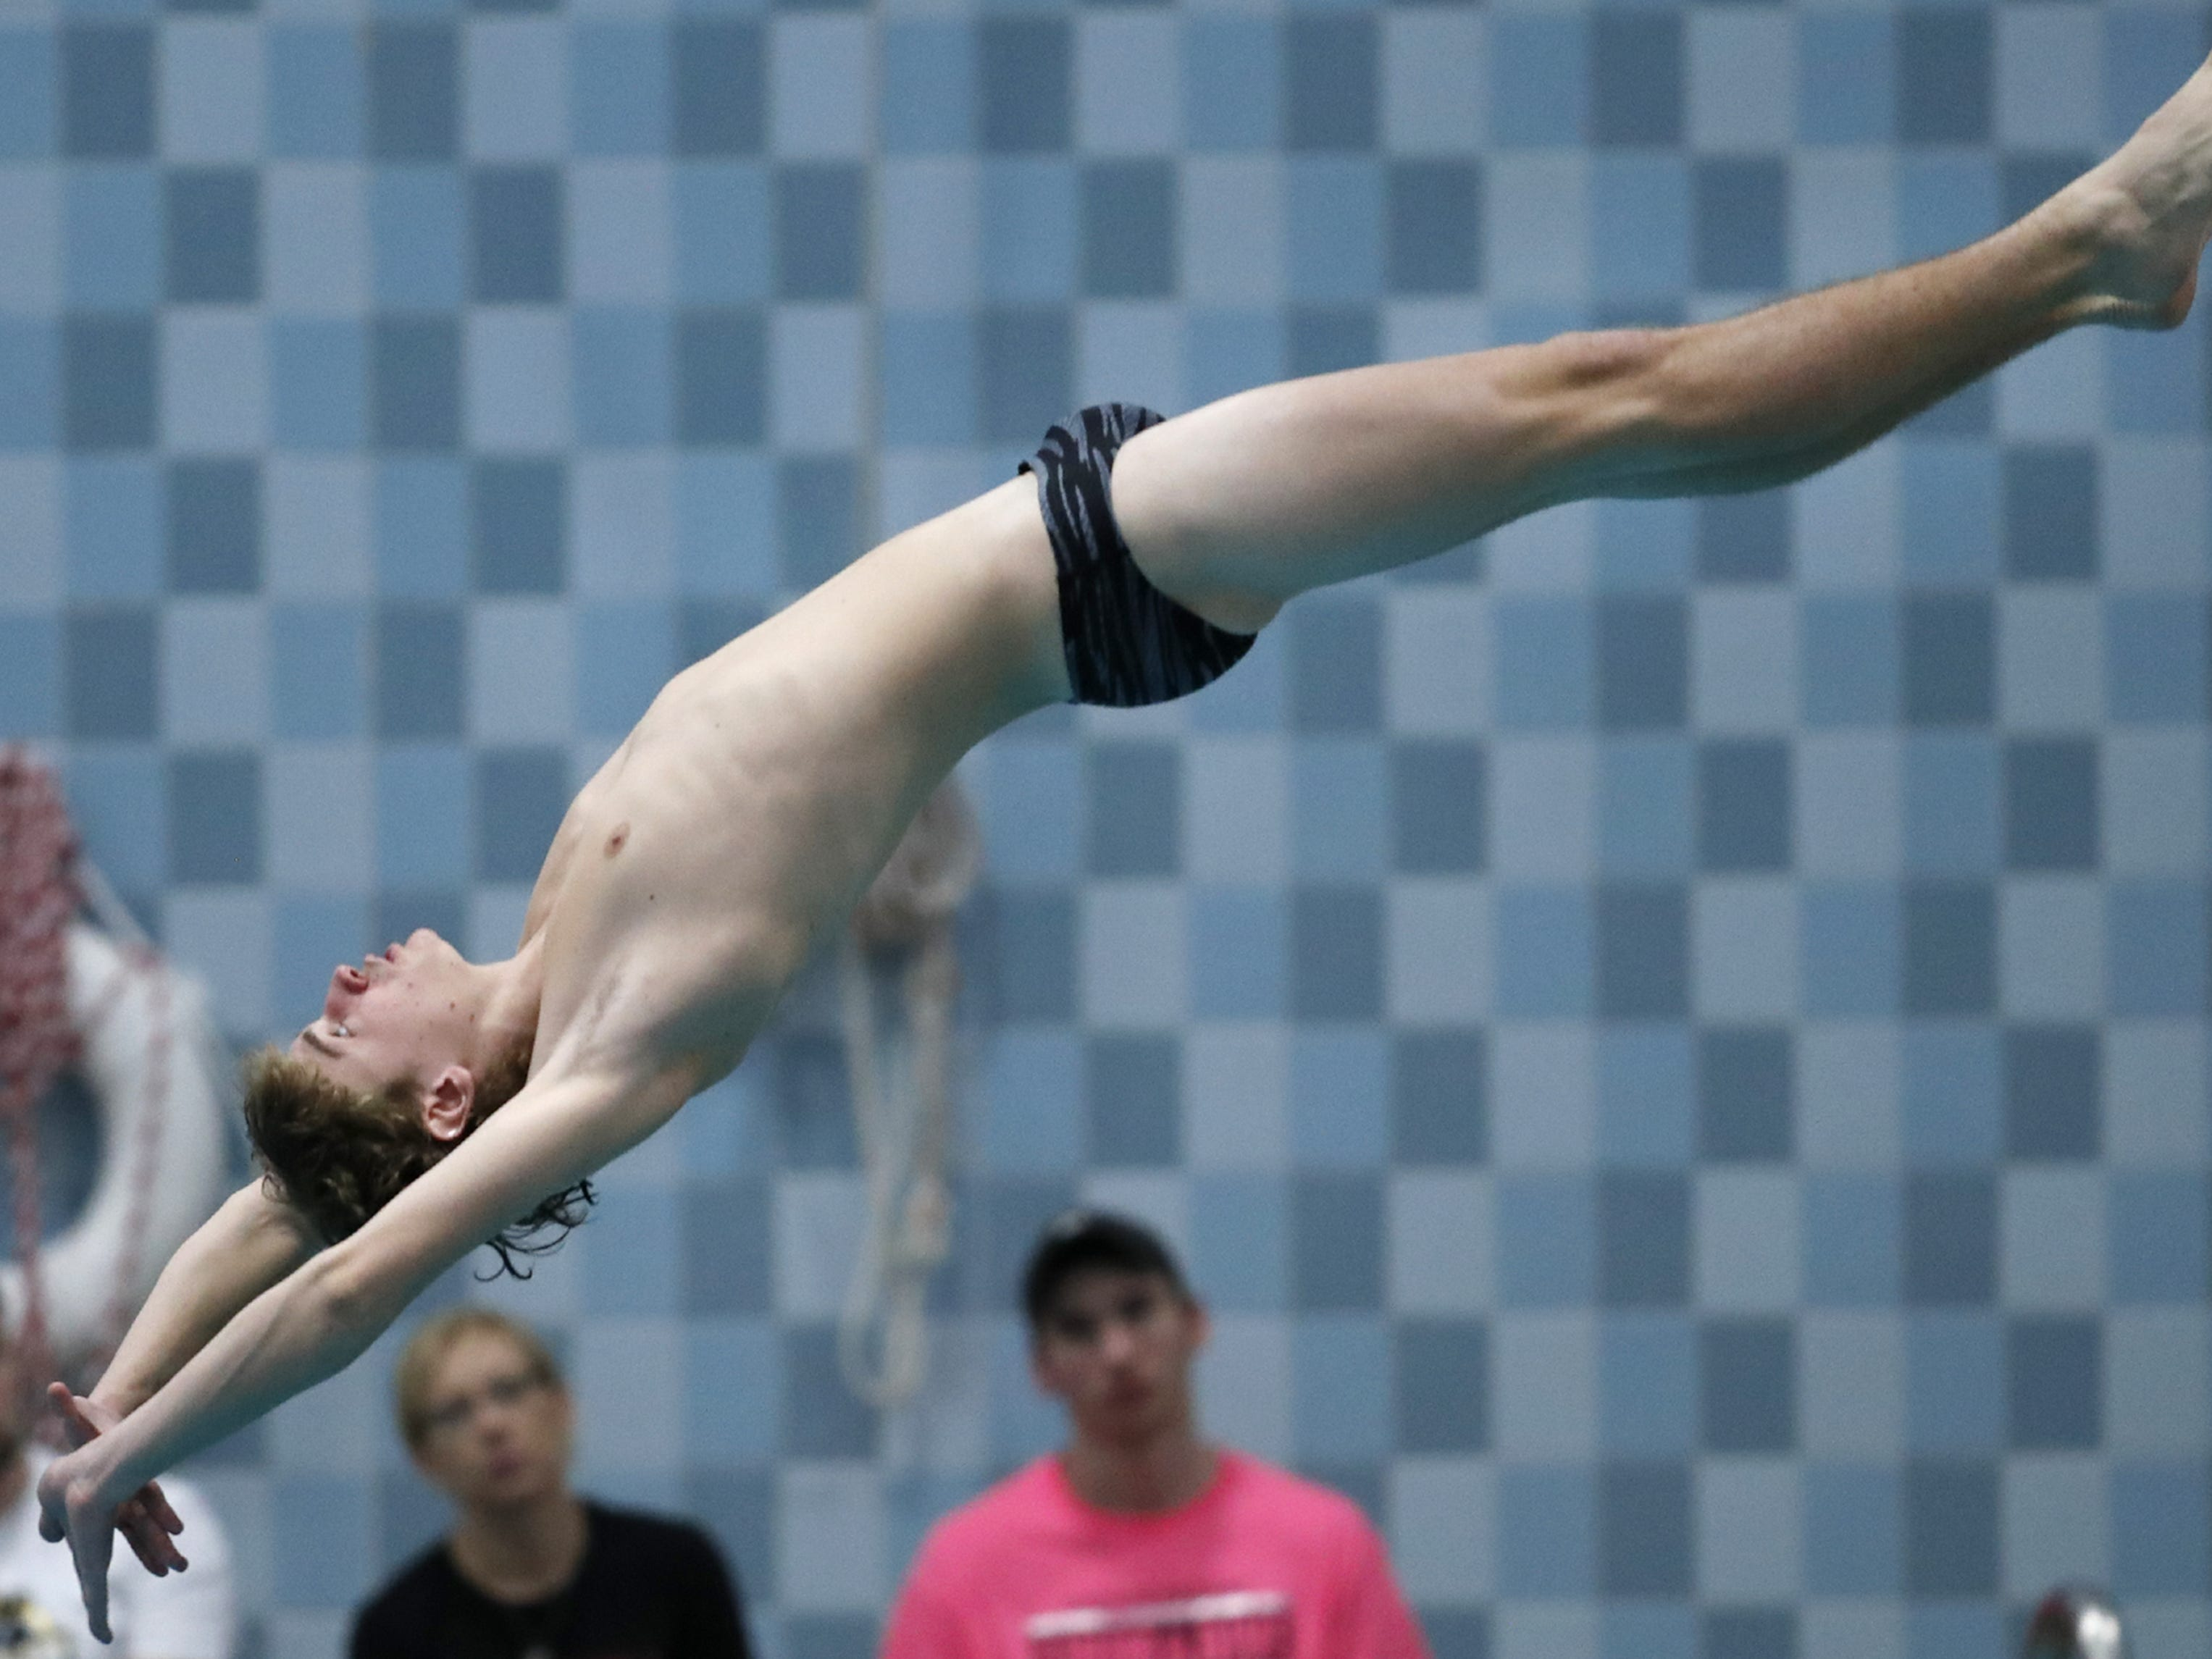 Appleton West/KimberlyÕs Nick O'Brien competes in the diving portion of the during the Division 1 2019 State Boys Swimming and Diving Championships Saturday, Feb. 16, 2019, at the UW Natatorium in Madison, Wis. Danny Damiani/USA TODAY NETWORK-Wisconsin